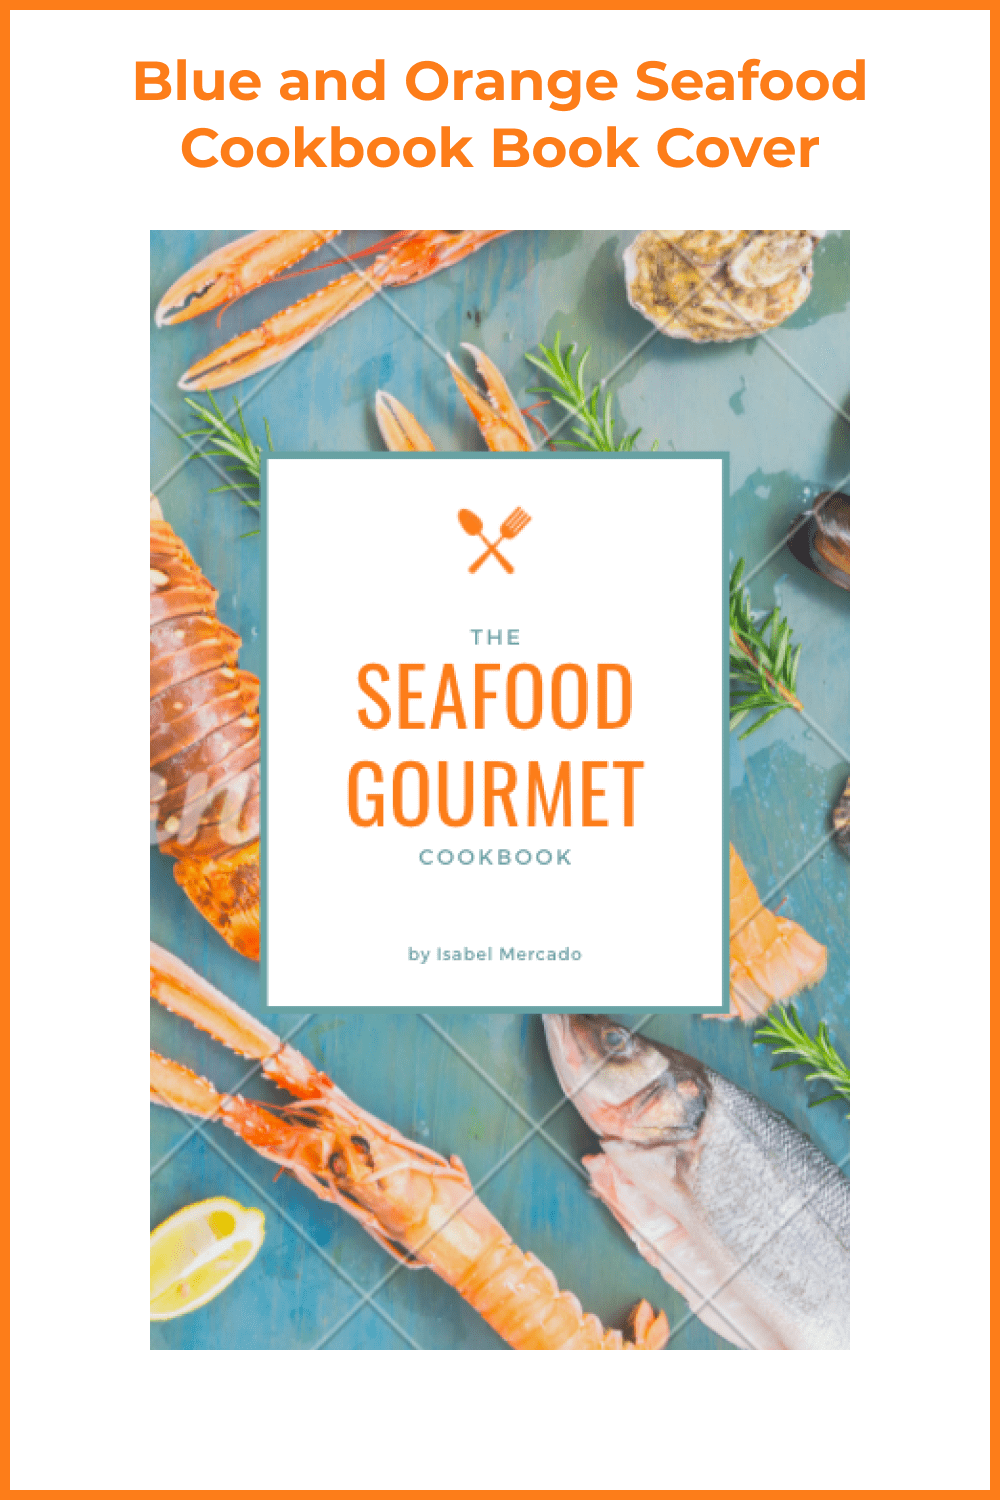 [Image: 10-Blue-and-Orange-Seafood-Cookbook-Book-Cover.png]